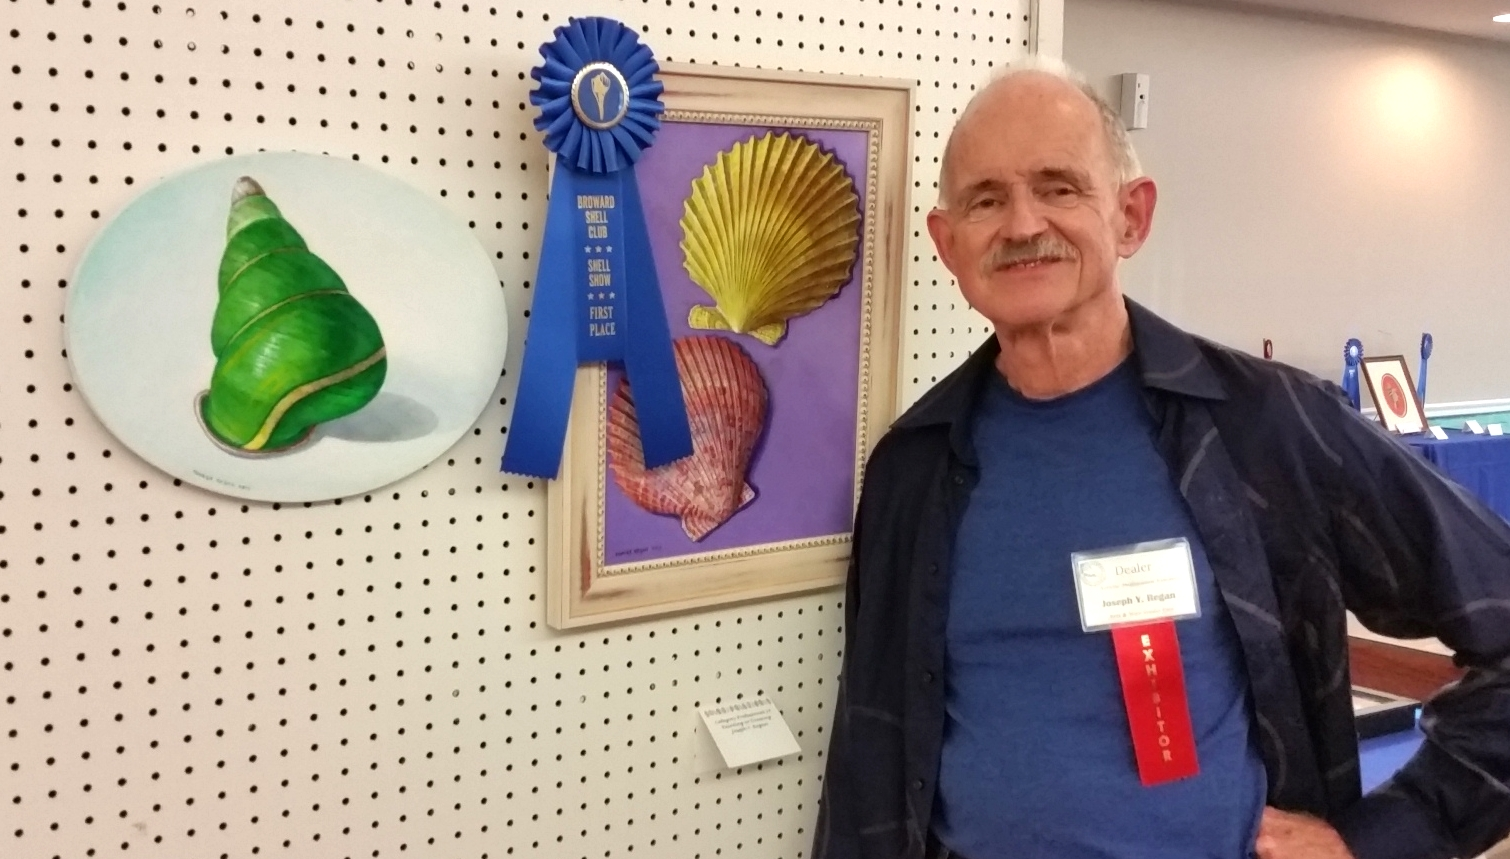 First Place for Professional Artist Painting of Shells at the Broward Shell Show!